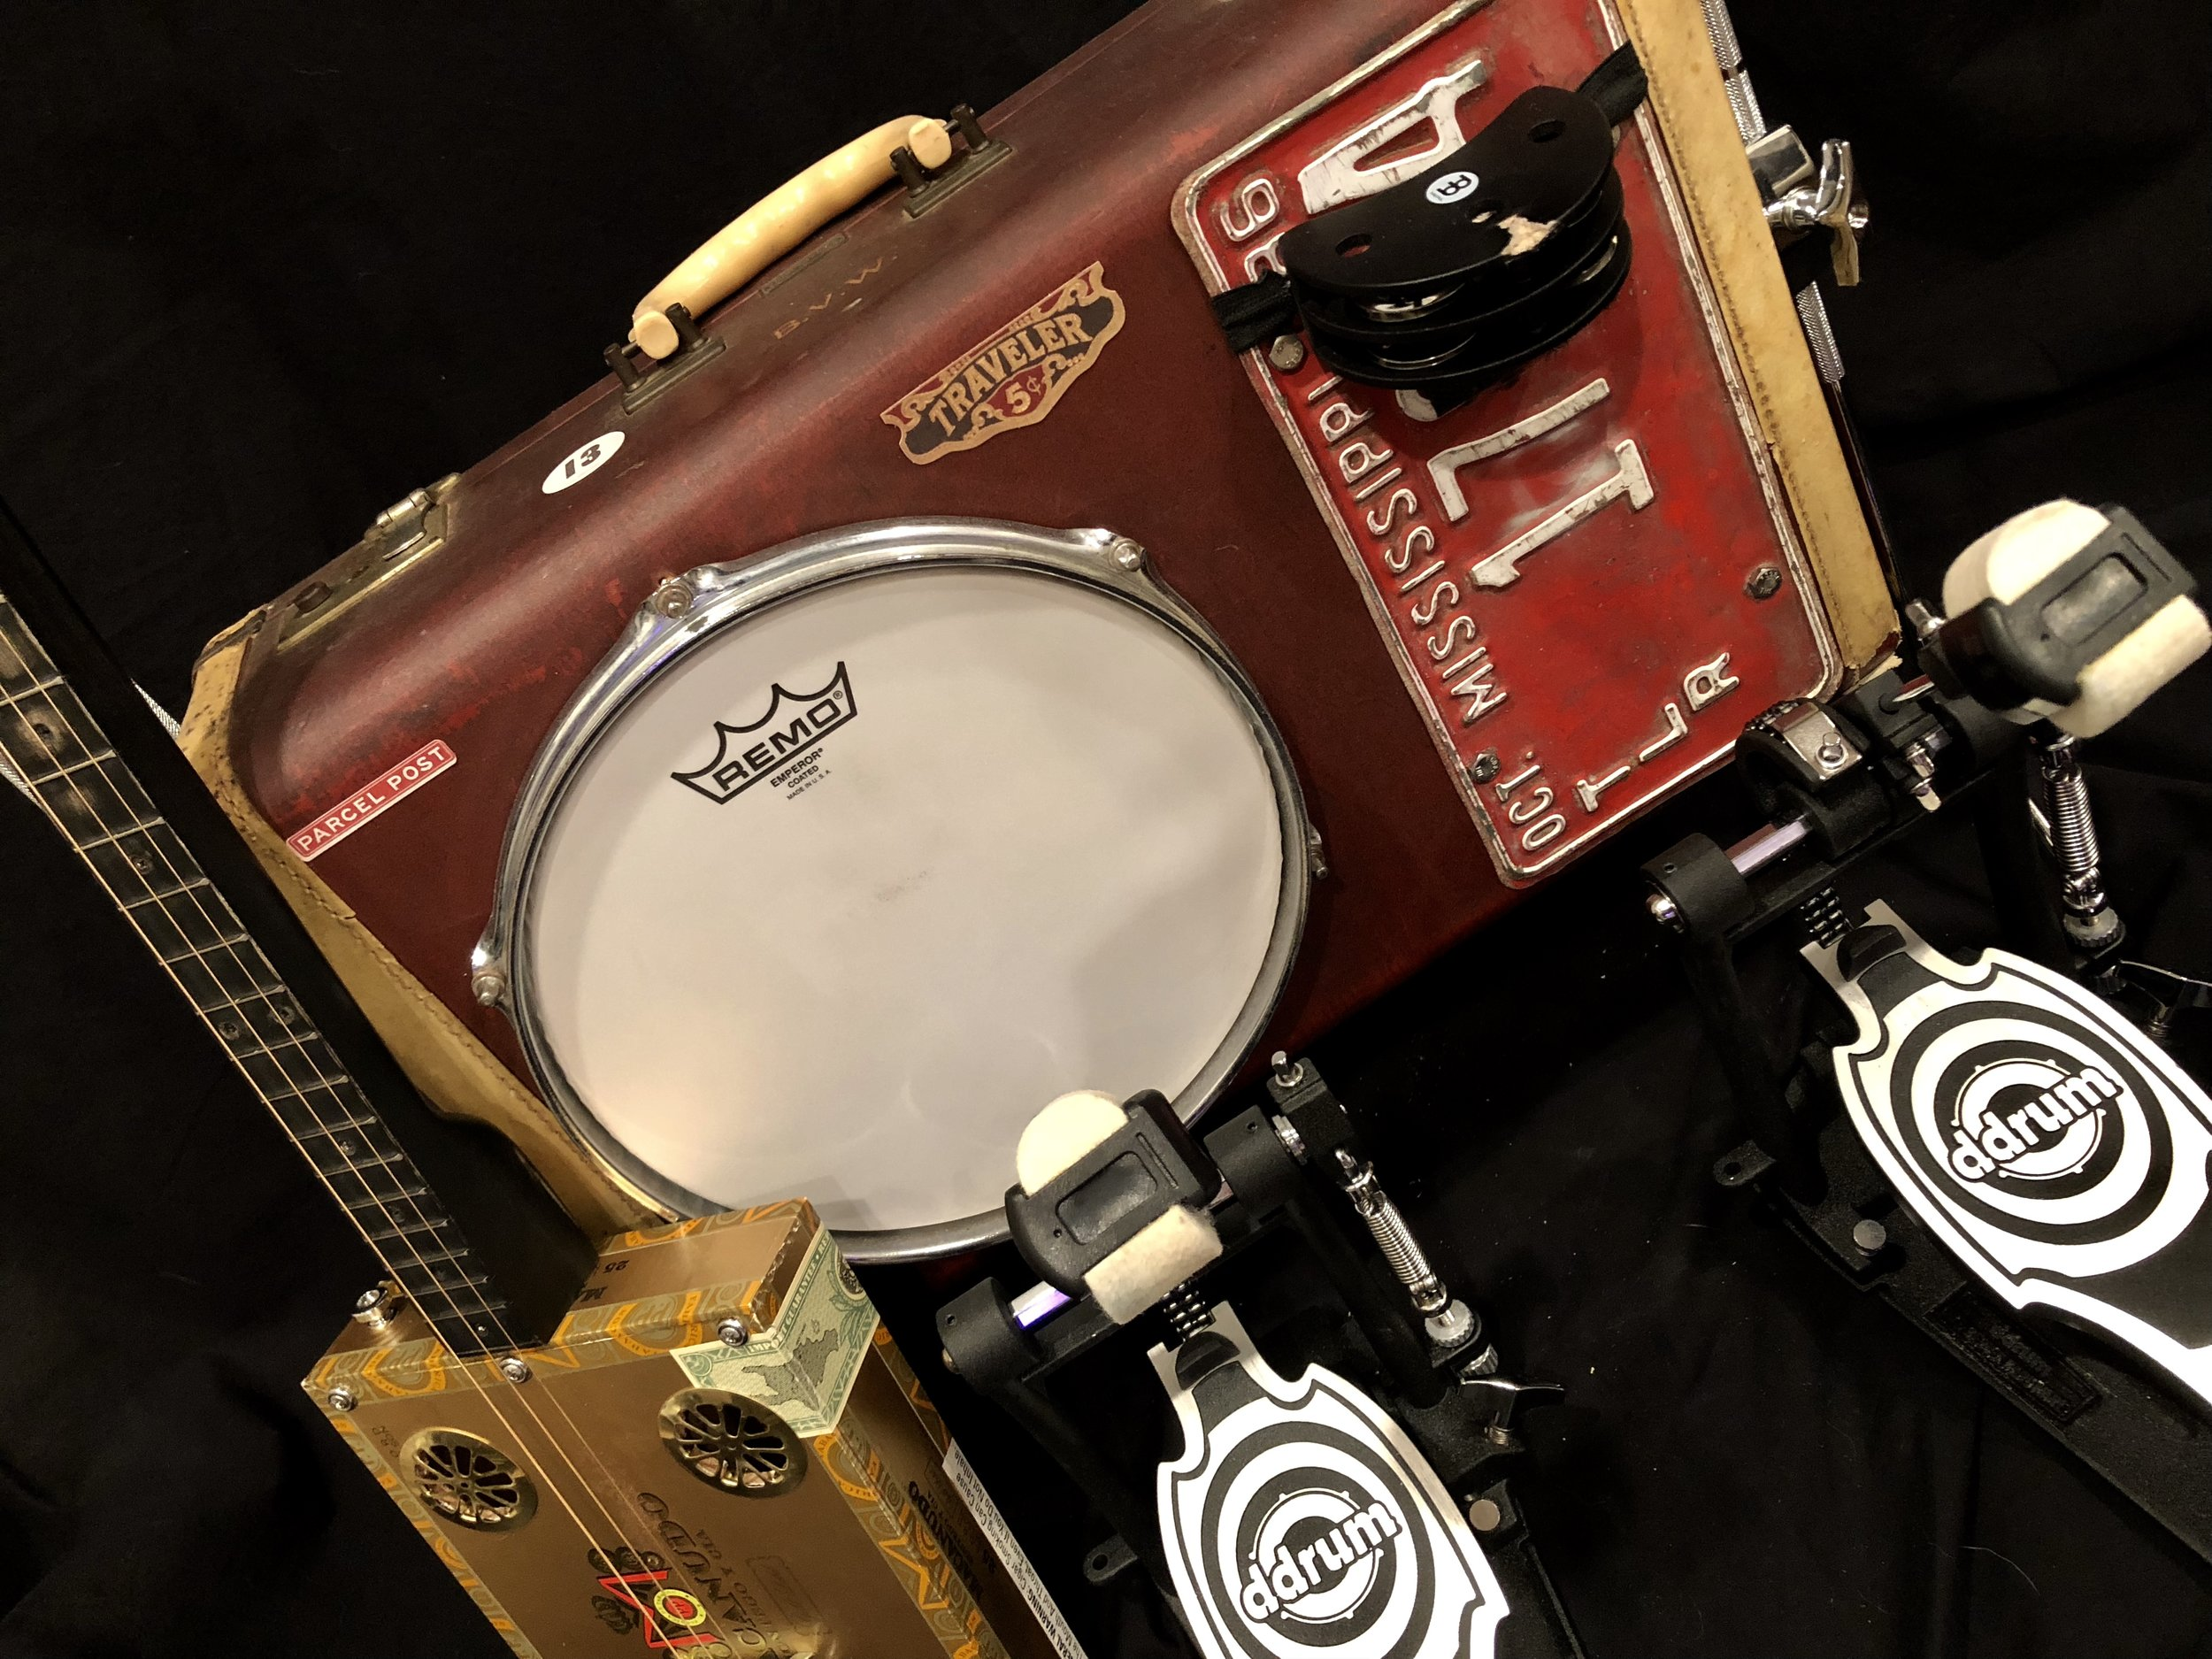 "Roots. Pan American 10"" Robert Johnson Series with Cigar Box guitar handcrafted in Ft. Worth TX by CBG.com."